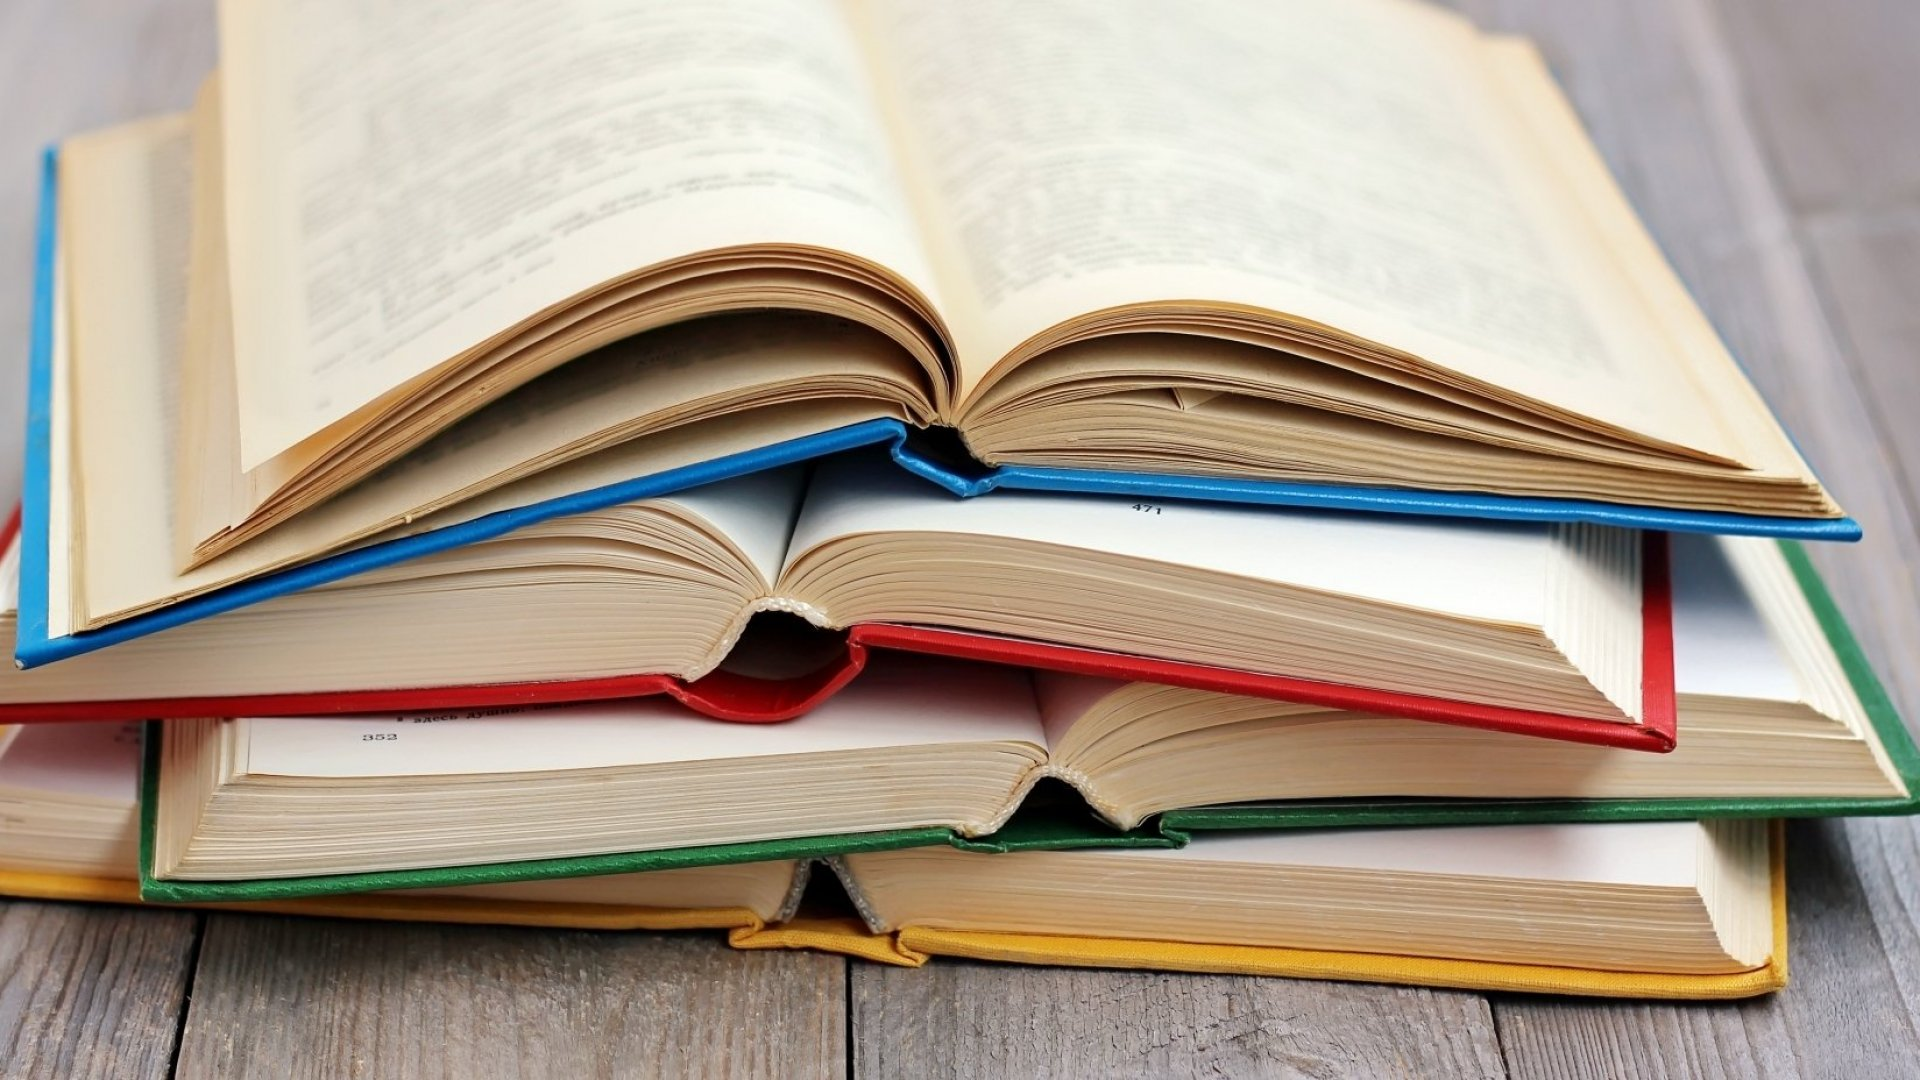 The Top 5 Must-Reads, According to 5 of America's Most Effective CEOs